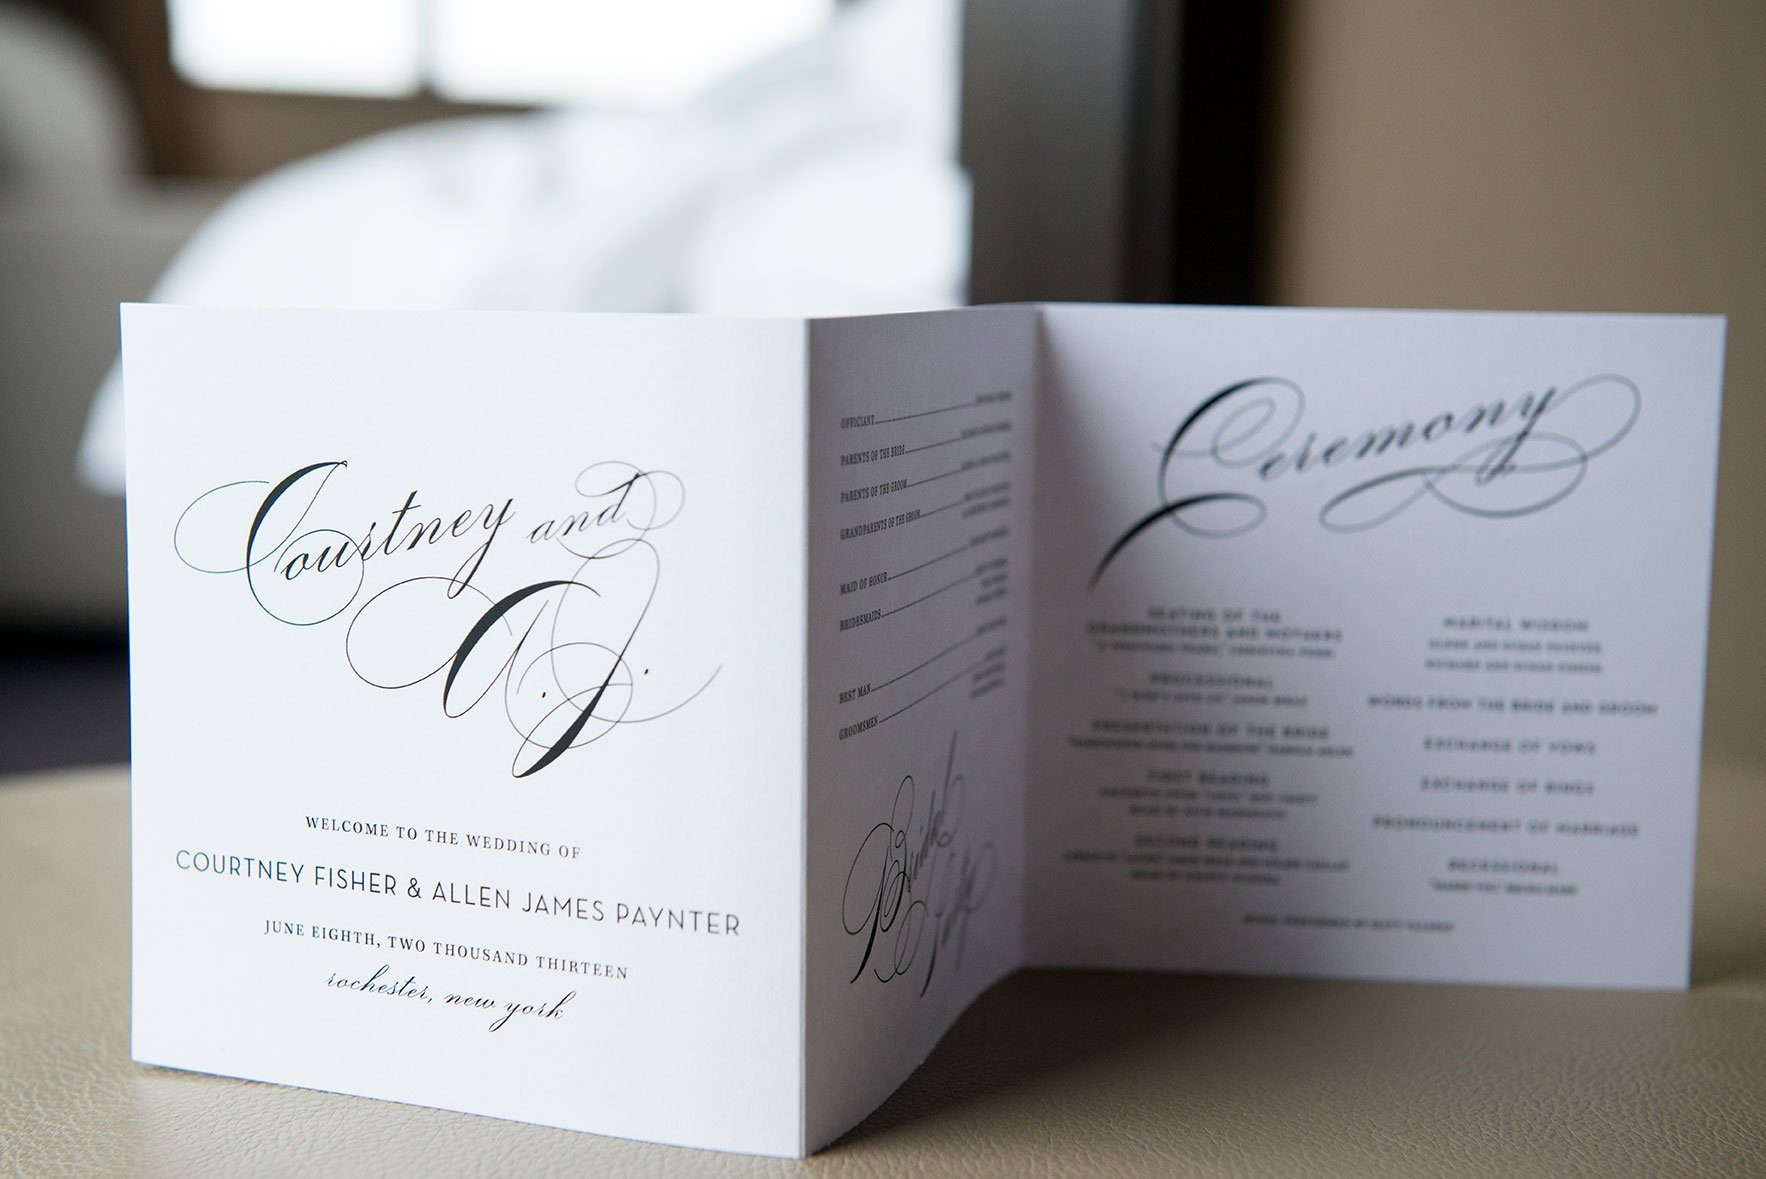 Easy Wedding Invites with nice invitations design